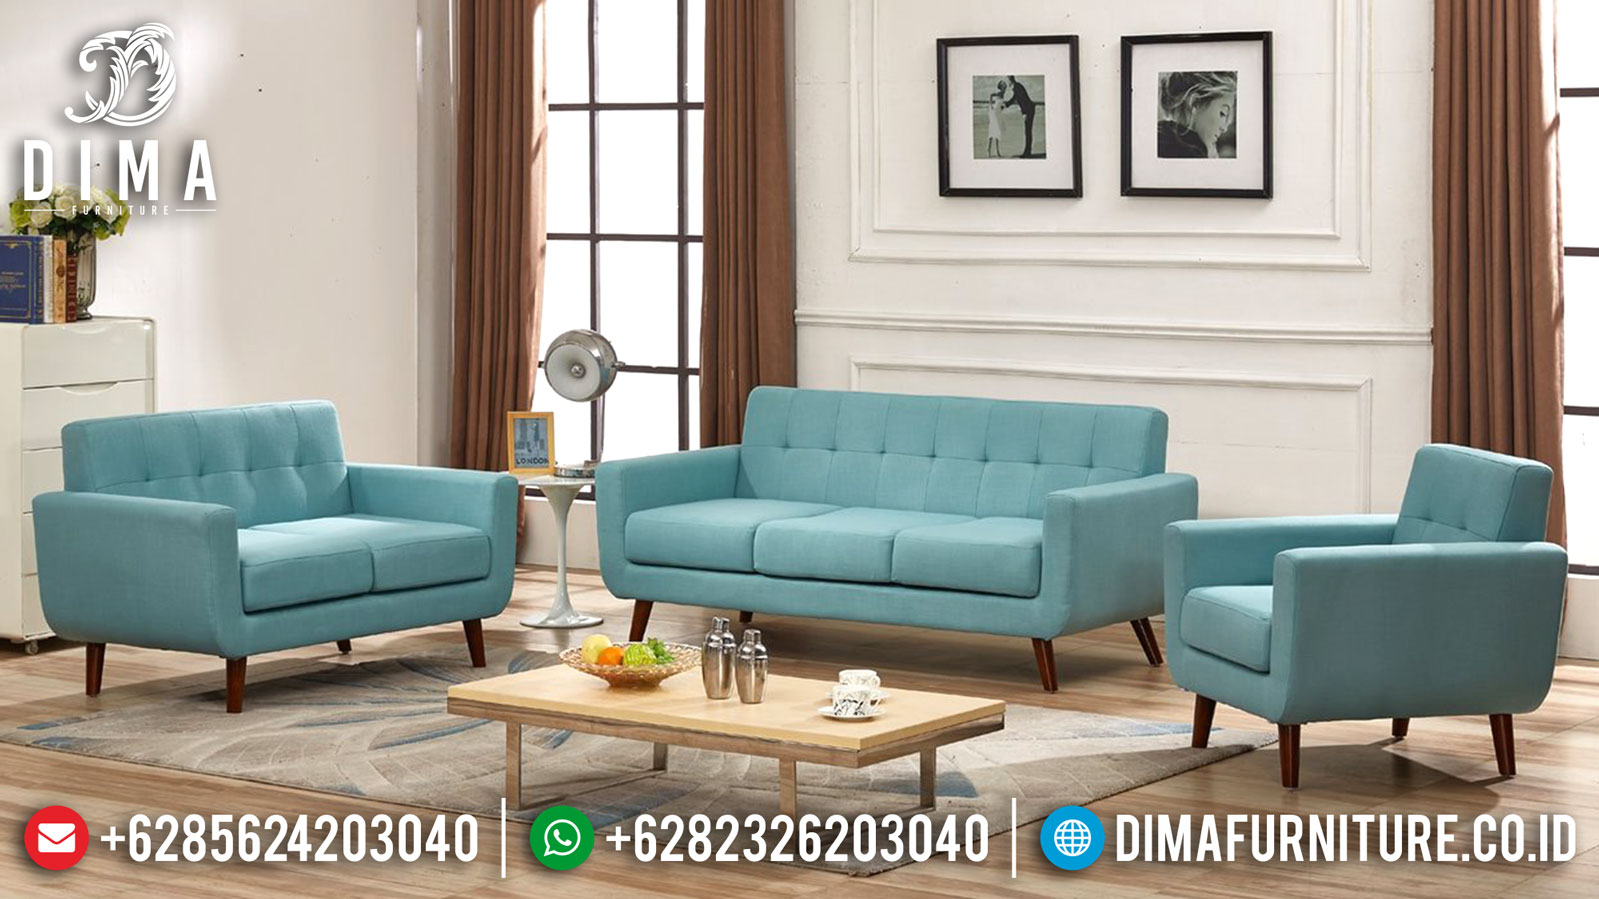 Desain Ruang Tamu Minimalis Set Sofa Minimalis Classic Retro New Available TTJ-0995